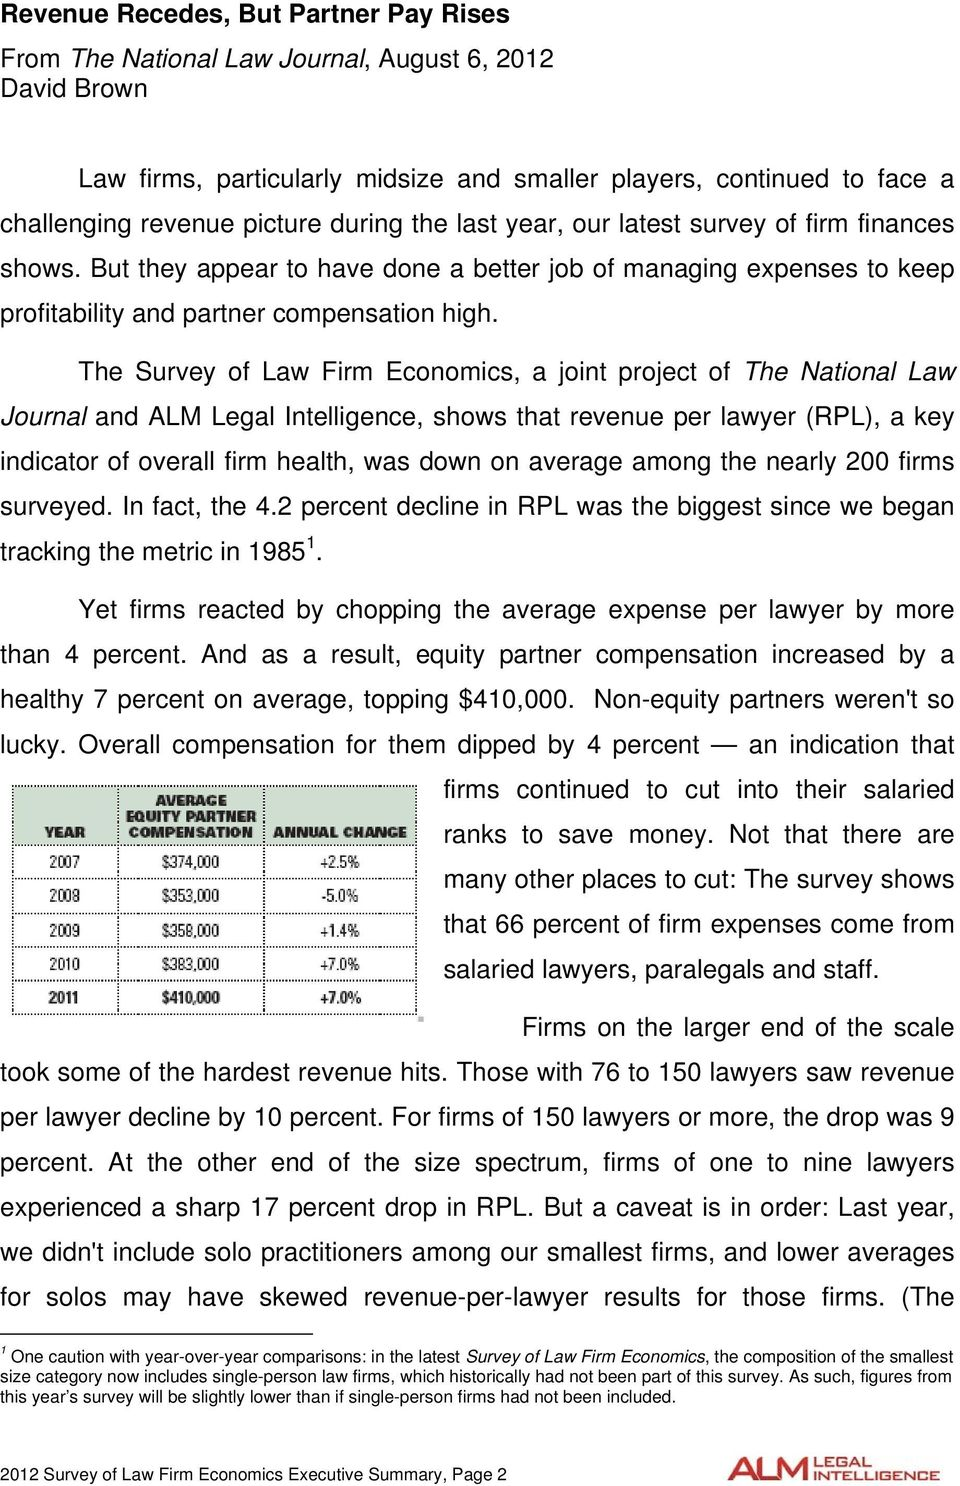 The Survey of Law Firm Economics, a joint project of The National Law Journal and ALM Legal Intelligence, shows that revenue per lawyer (RPL), a key indicator of overall firm health, was down on